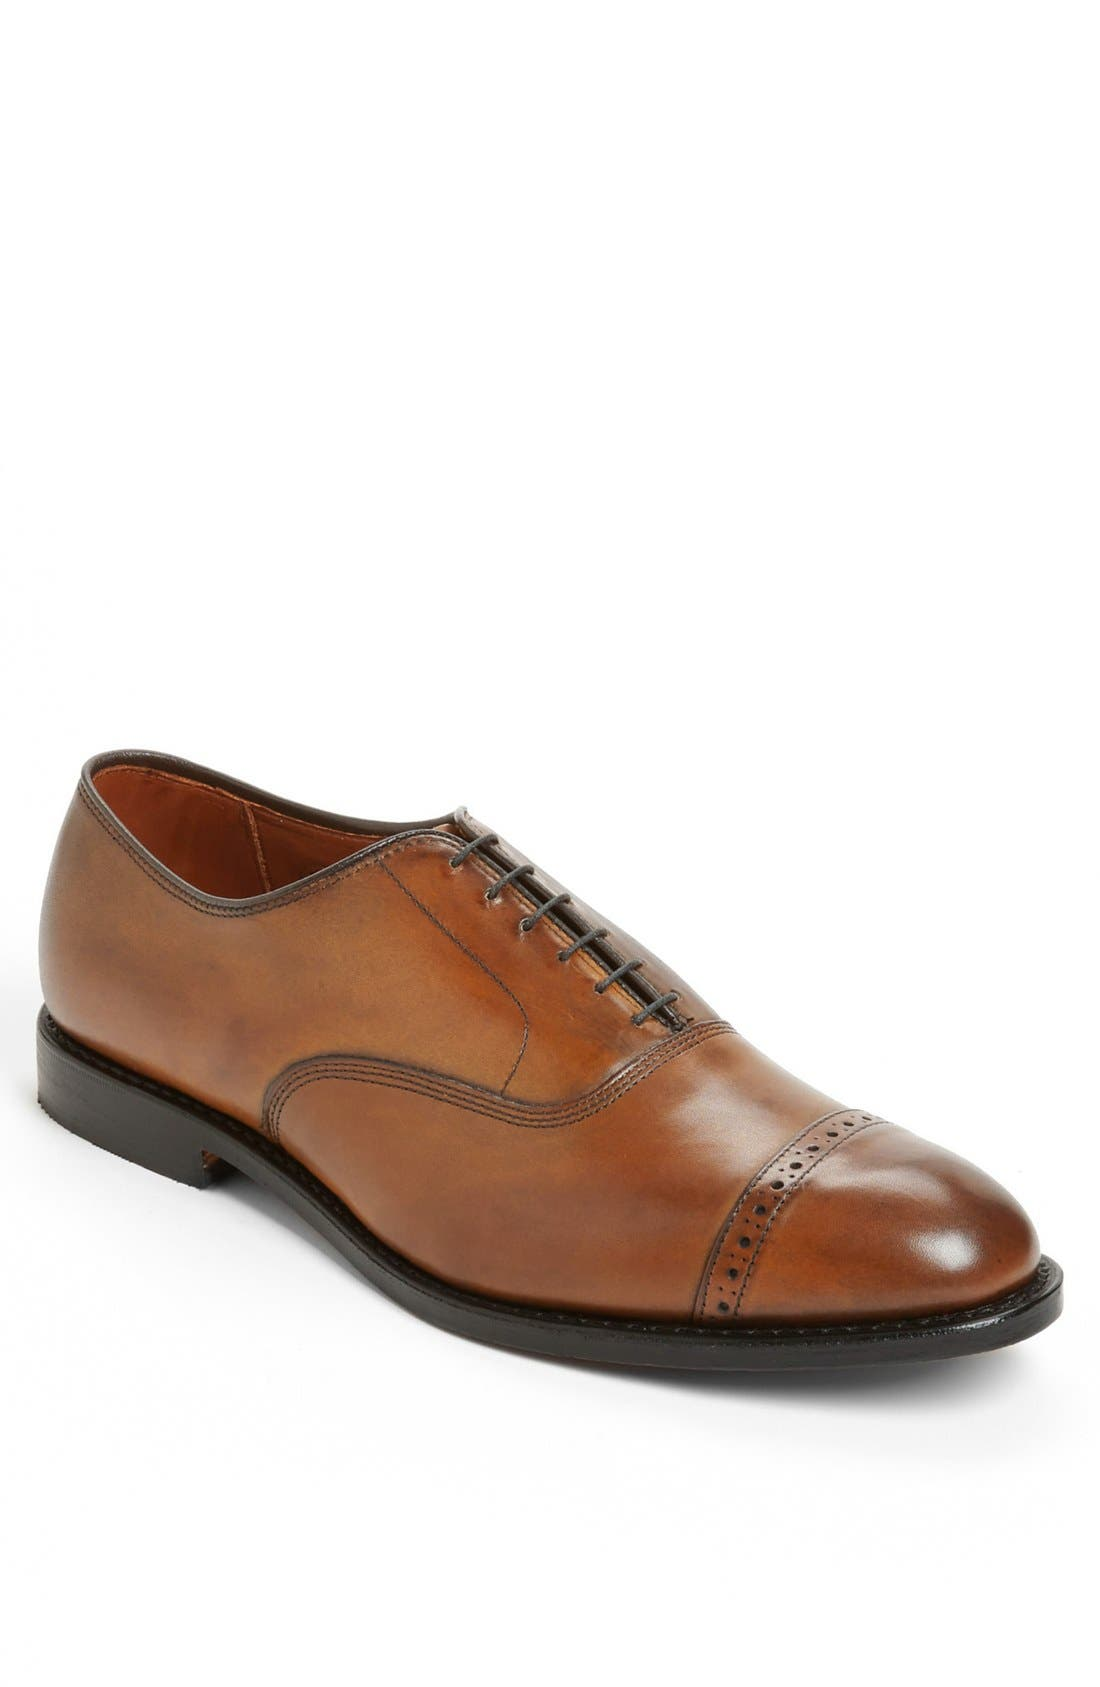 'Fifth Avenue' Oxford,                             Main thumbnail 1, color,                             Walnut Calf